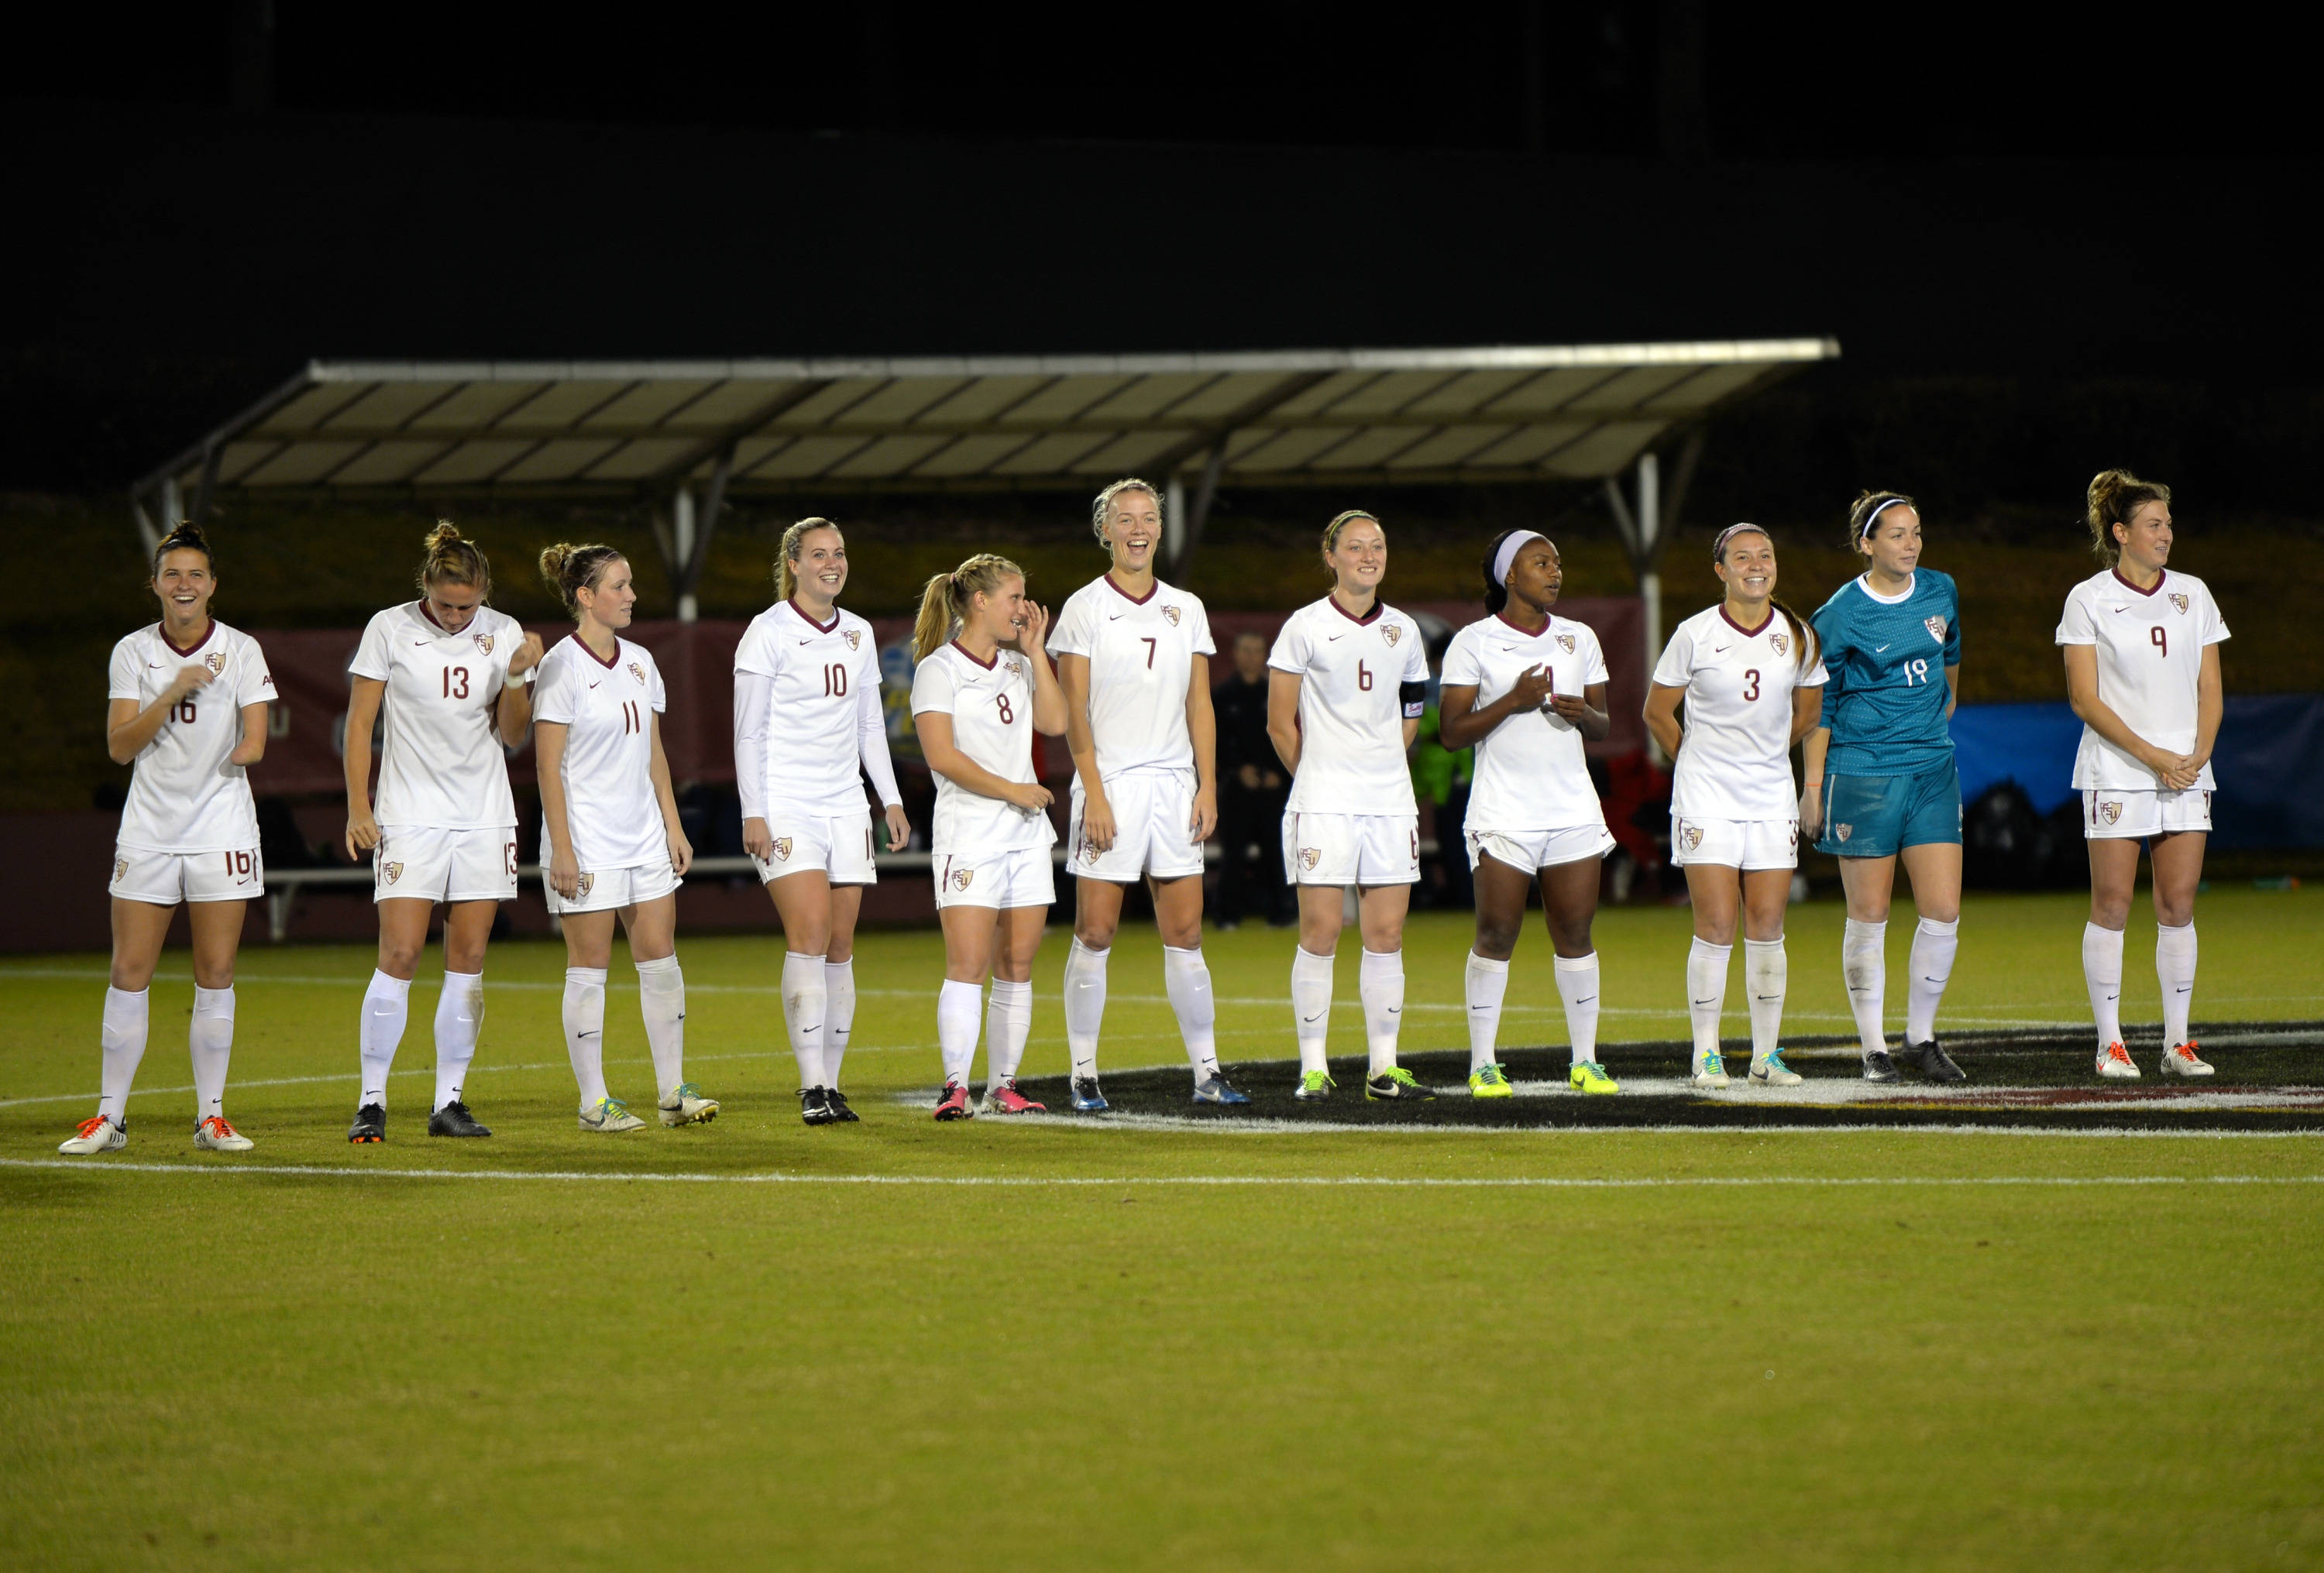 The Seminoles introduced during the first round of the NCAA Tournament against South Alabama